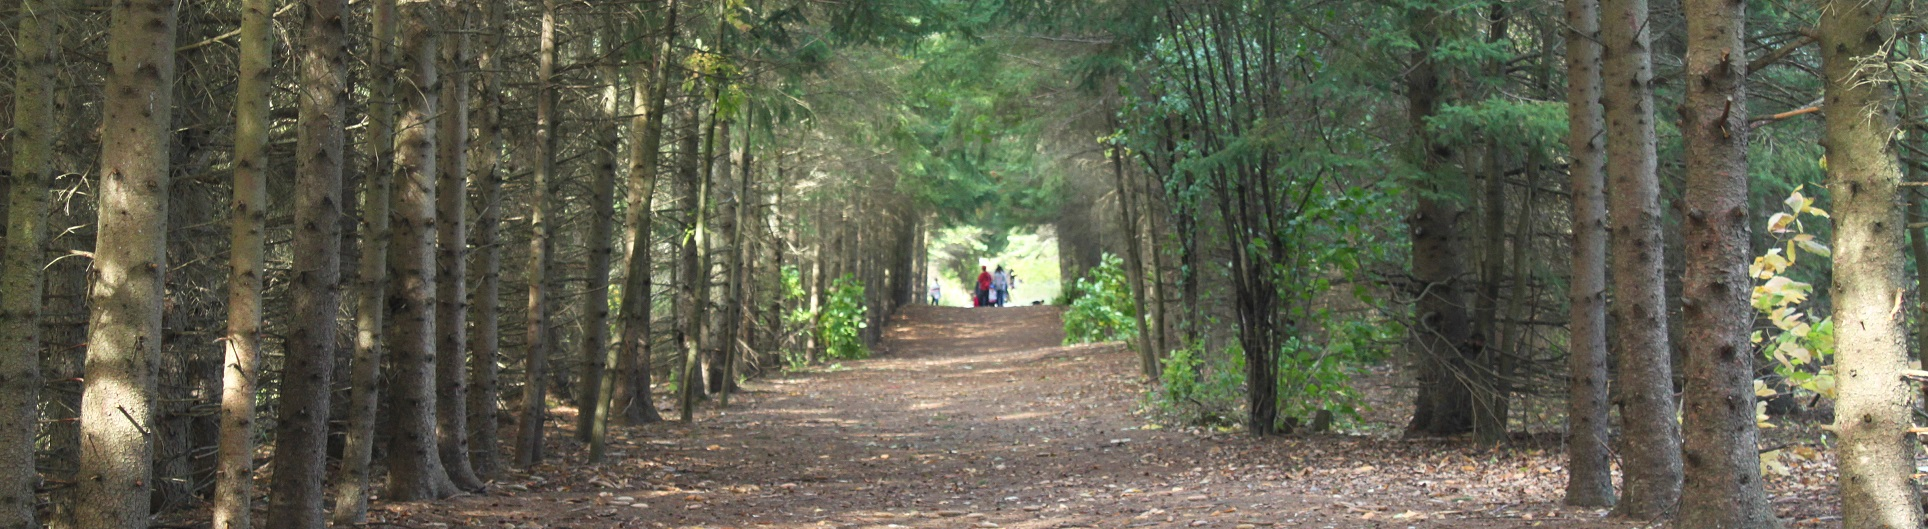 nature trail at Kortright Centre for Conservation